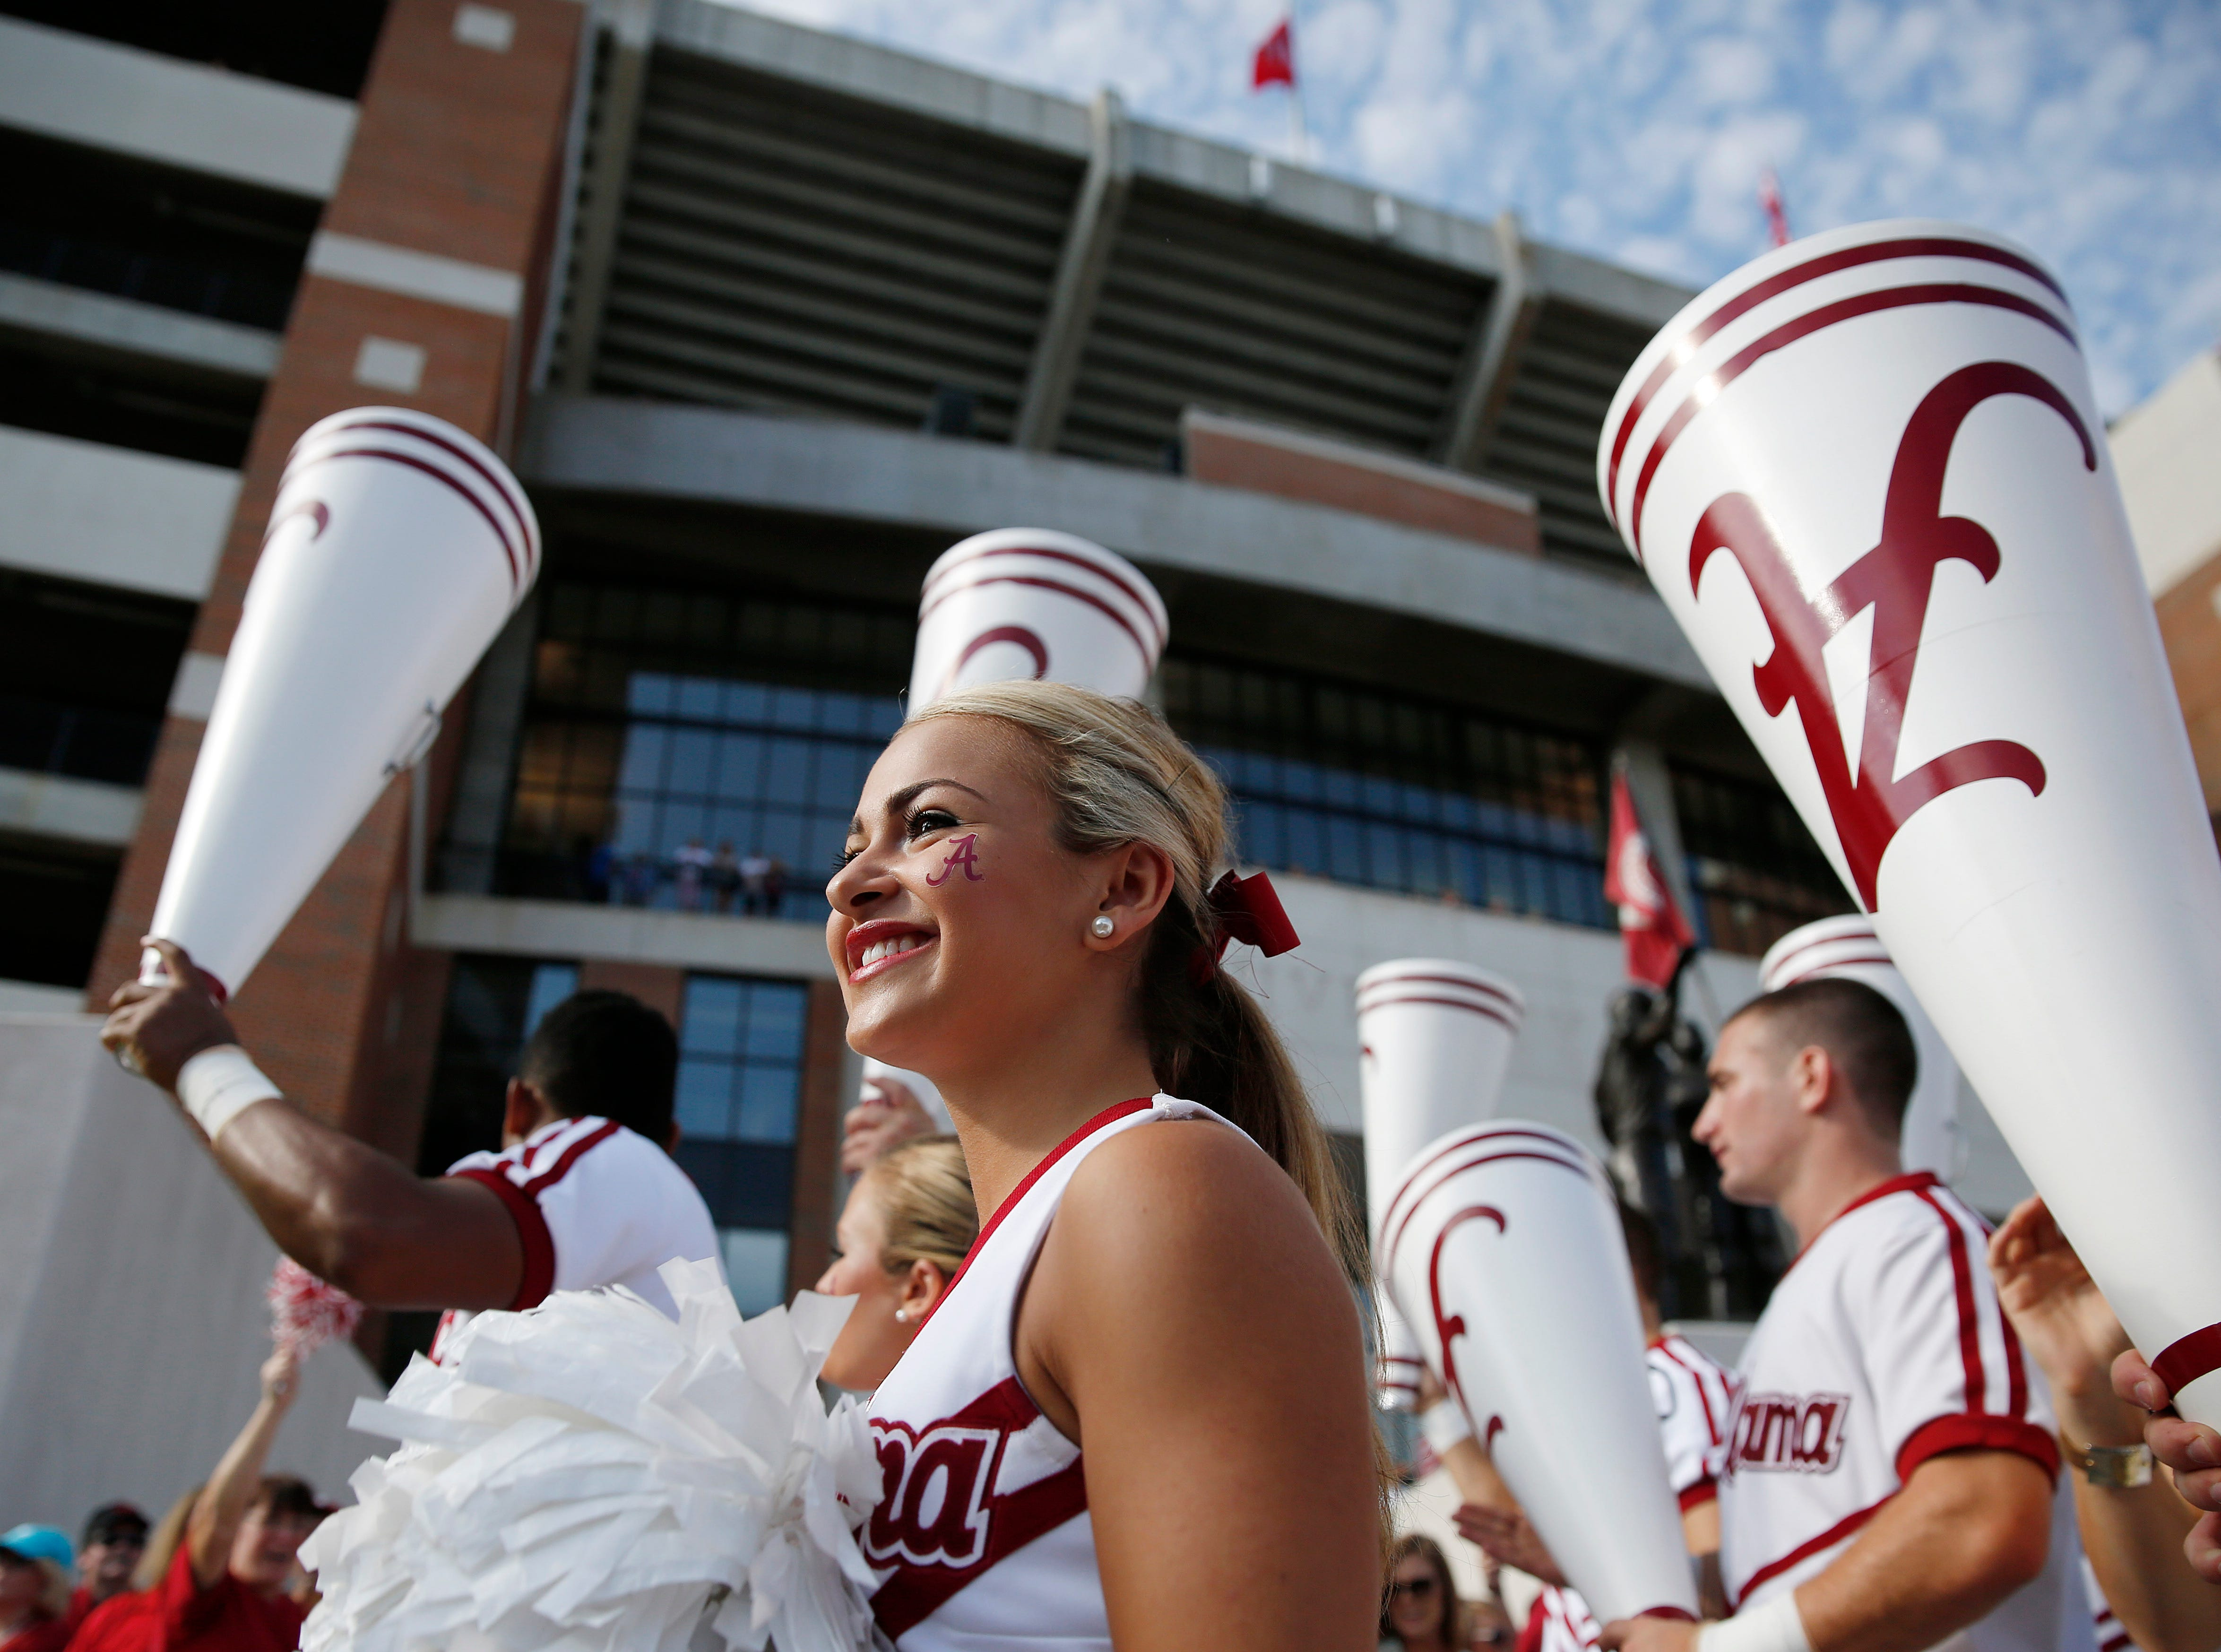 Alabama cheerleaders lead the crowd in a cheer as the team walks into Bryant–Denny Stadium before Florida Atlantic plays Alabama on Saturday, Sept. 6, 2014, in Tuscaloosa, Ala. (AP Photo/Brynn Anderson)